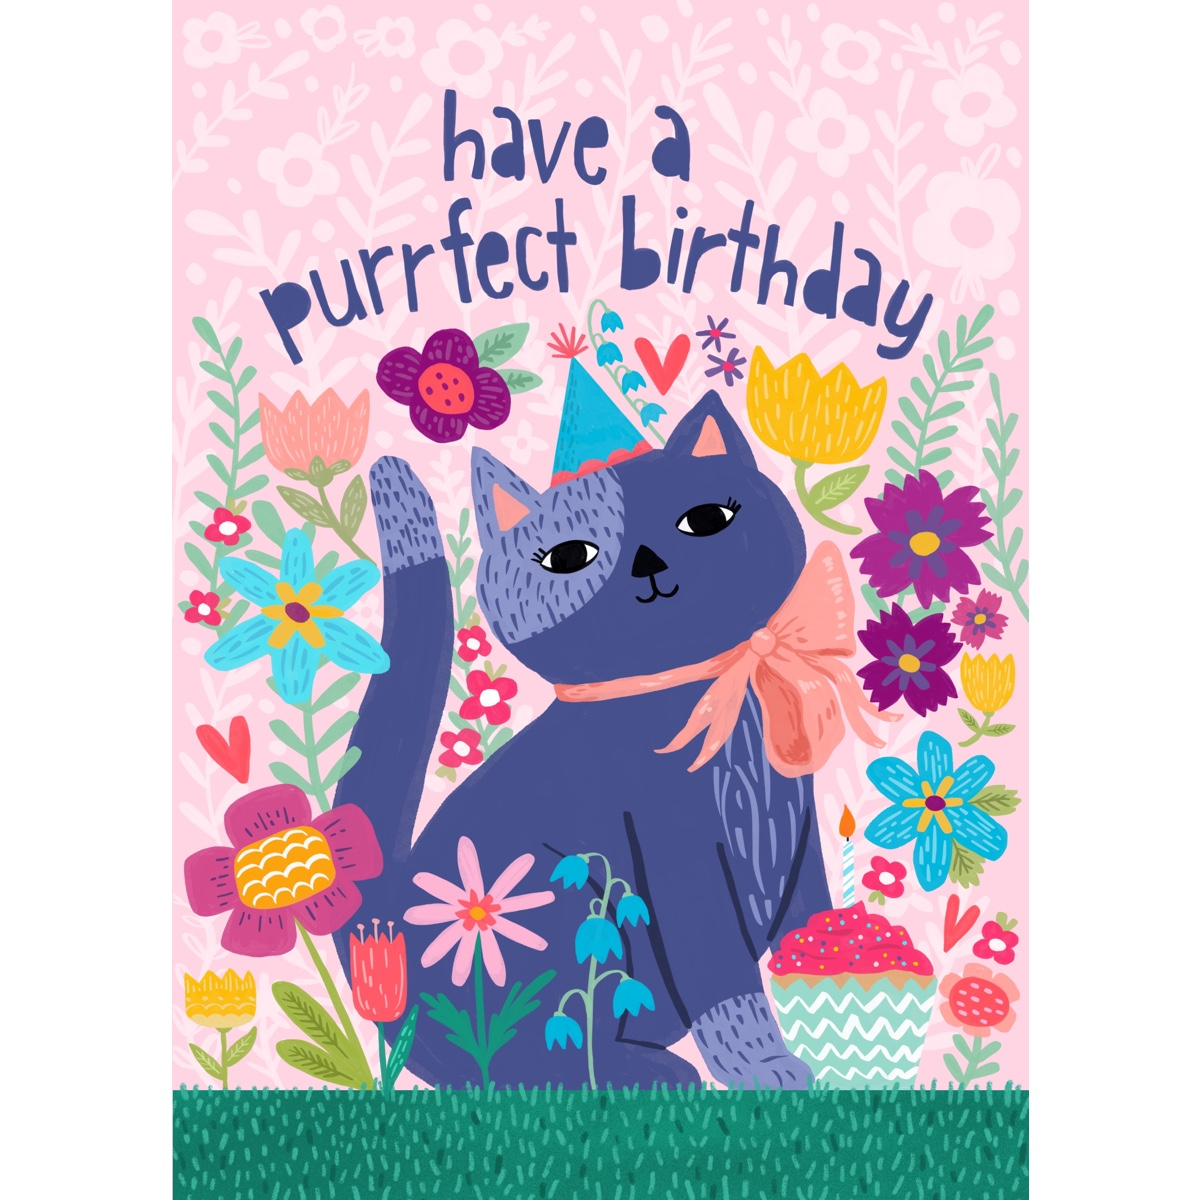 jjd-birthday_purrfectcat